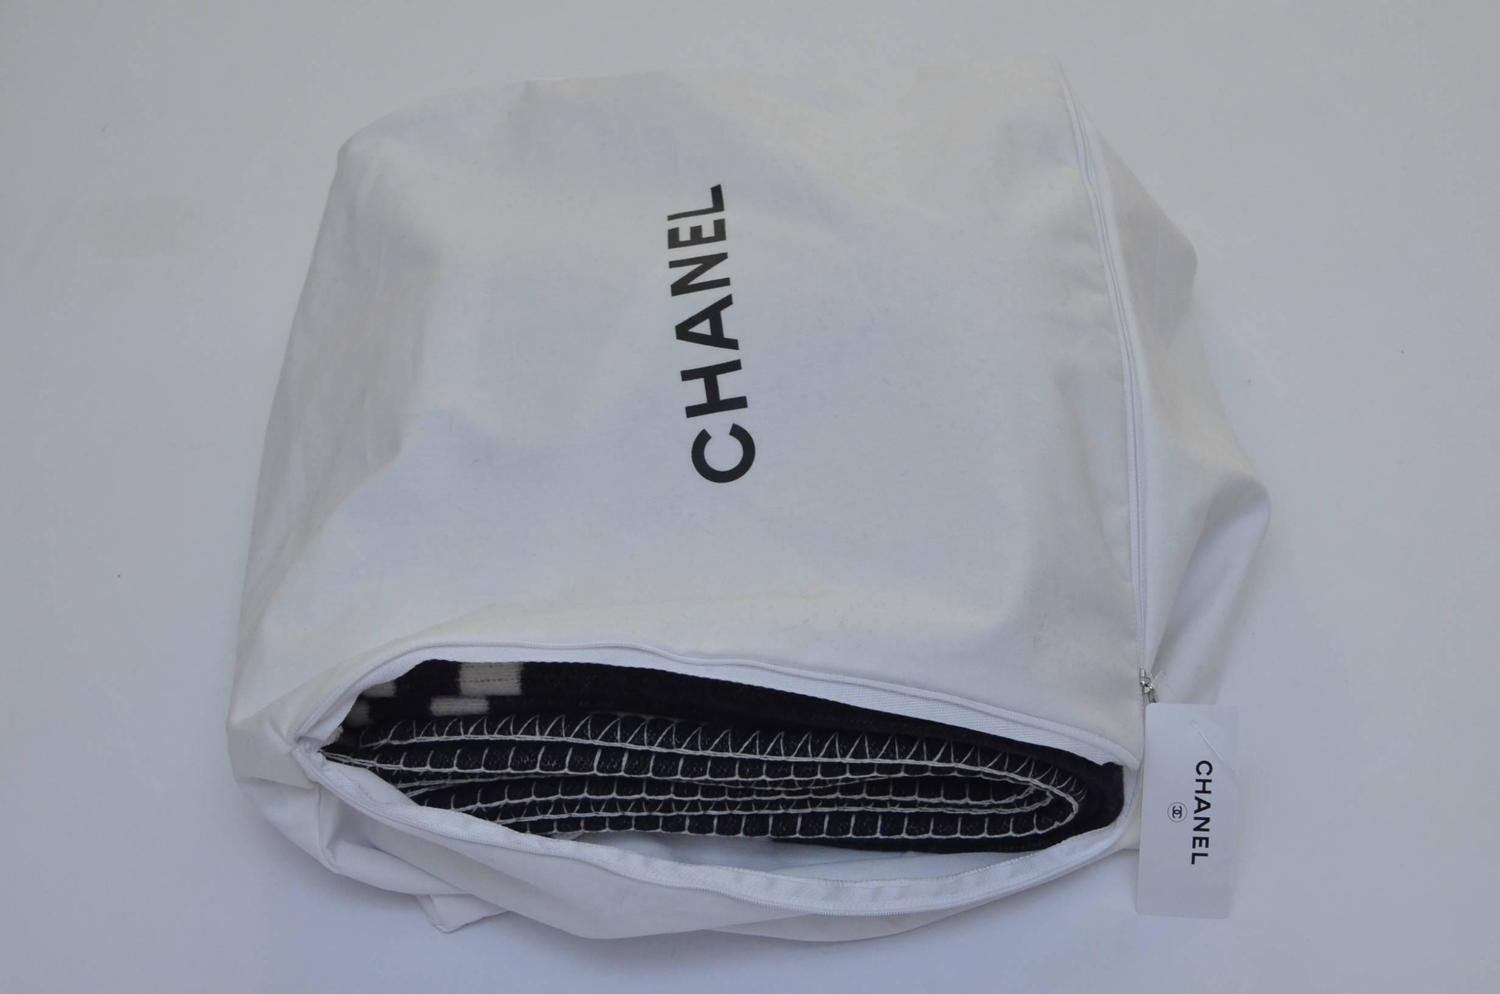 CHANEL Black and Off White Large CC Logo Travel Home Decor Throw Blanket NEW For Sale at 1stdibs